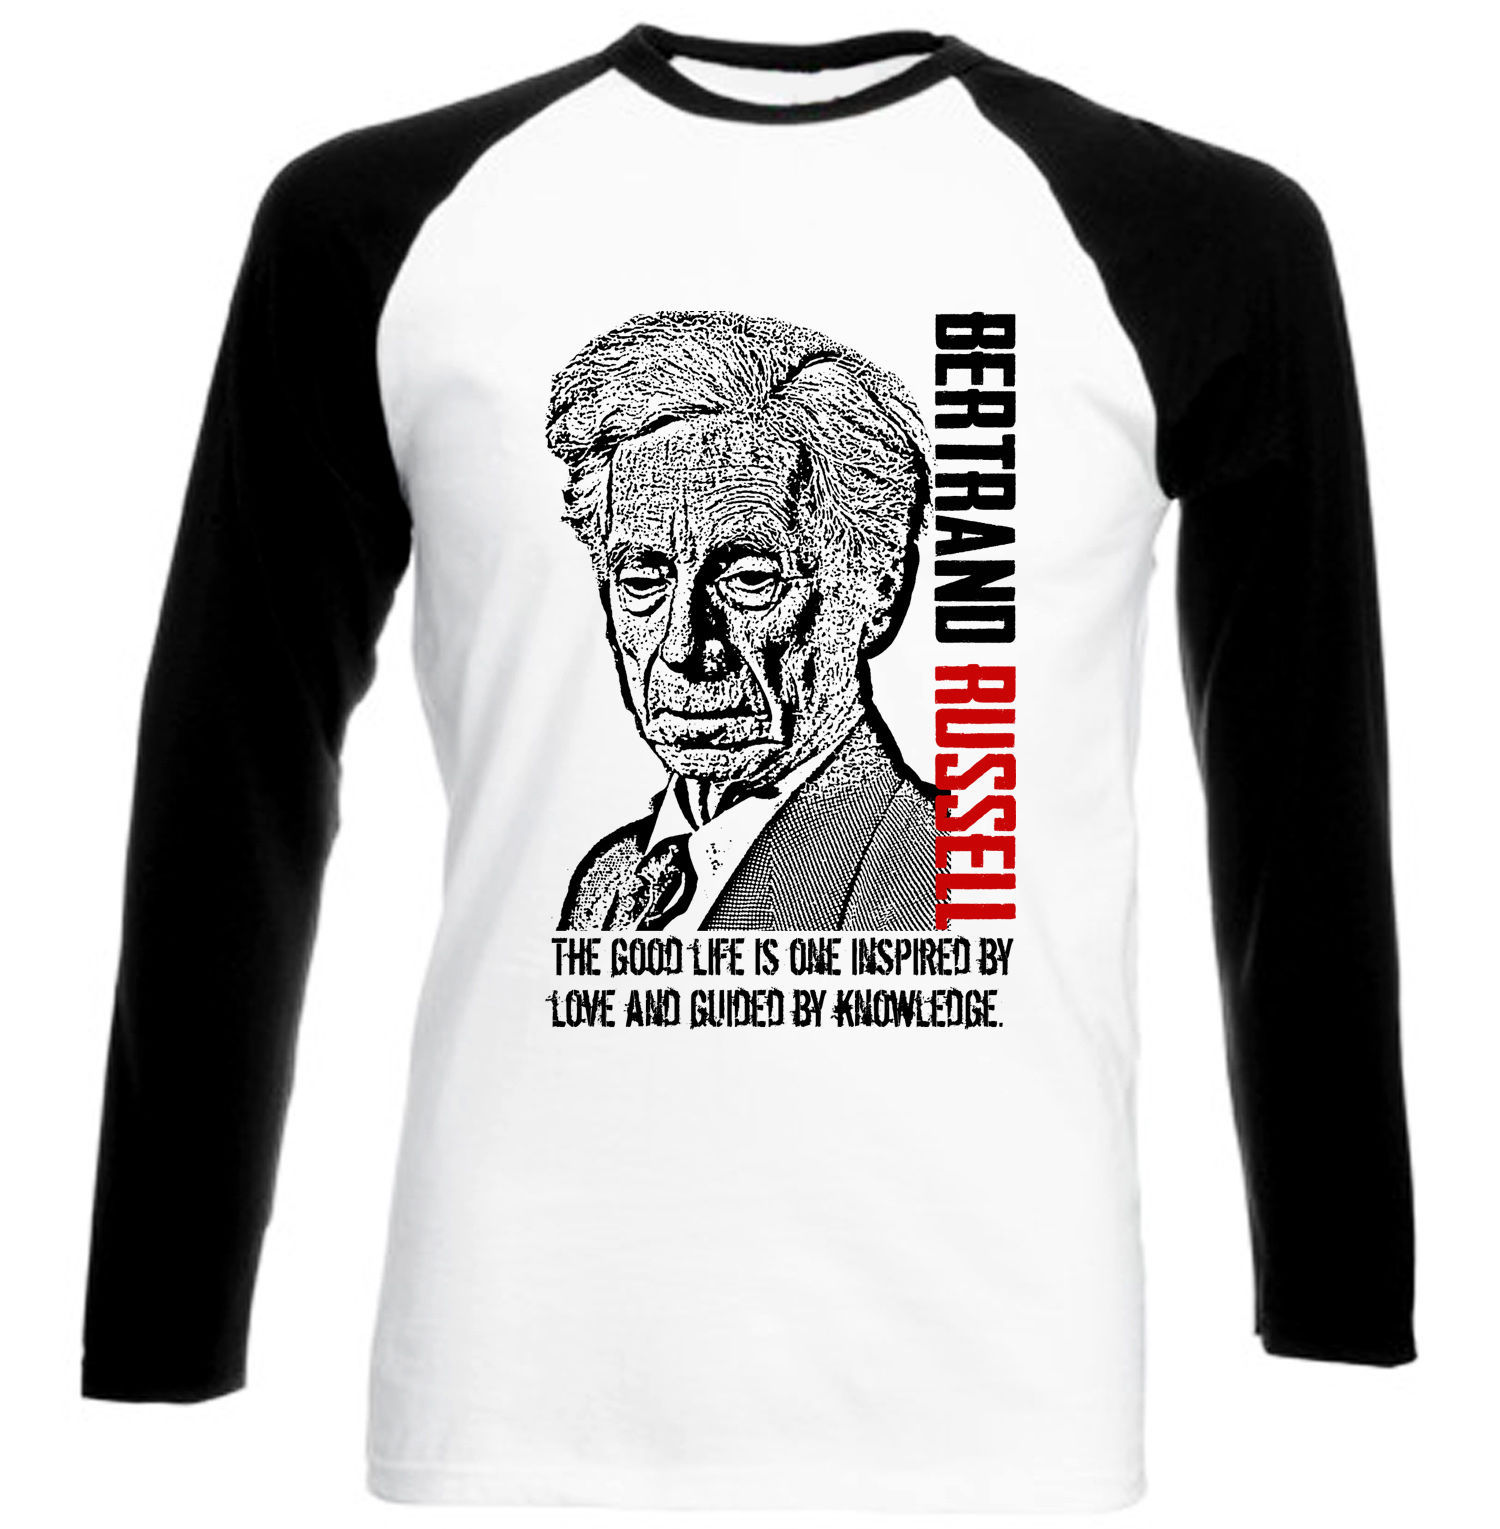 BERTRAND RUSSELL - COTTON BLACK SLEEVED TSHIRT- ALL SIZES IN STOCK